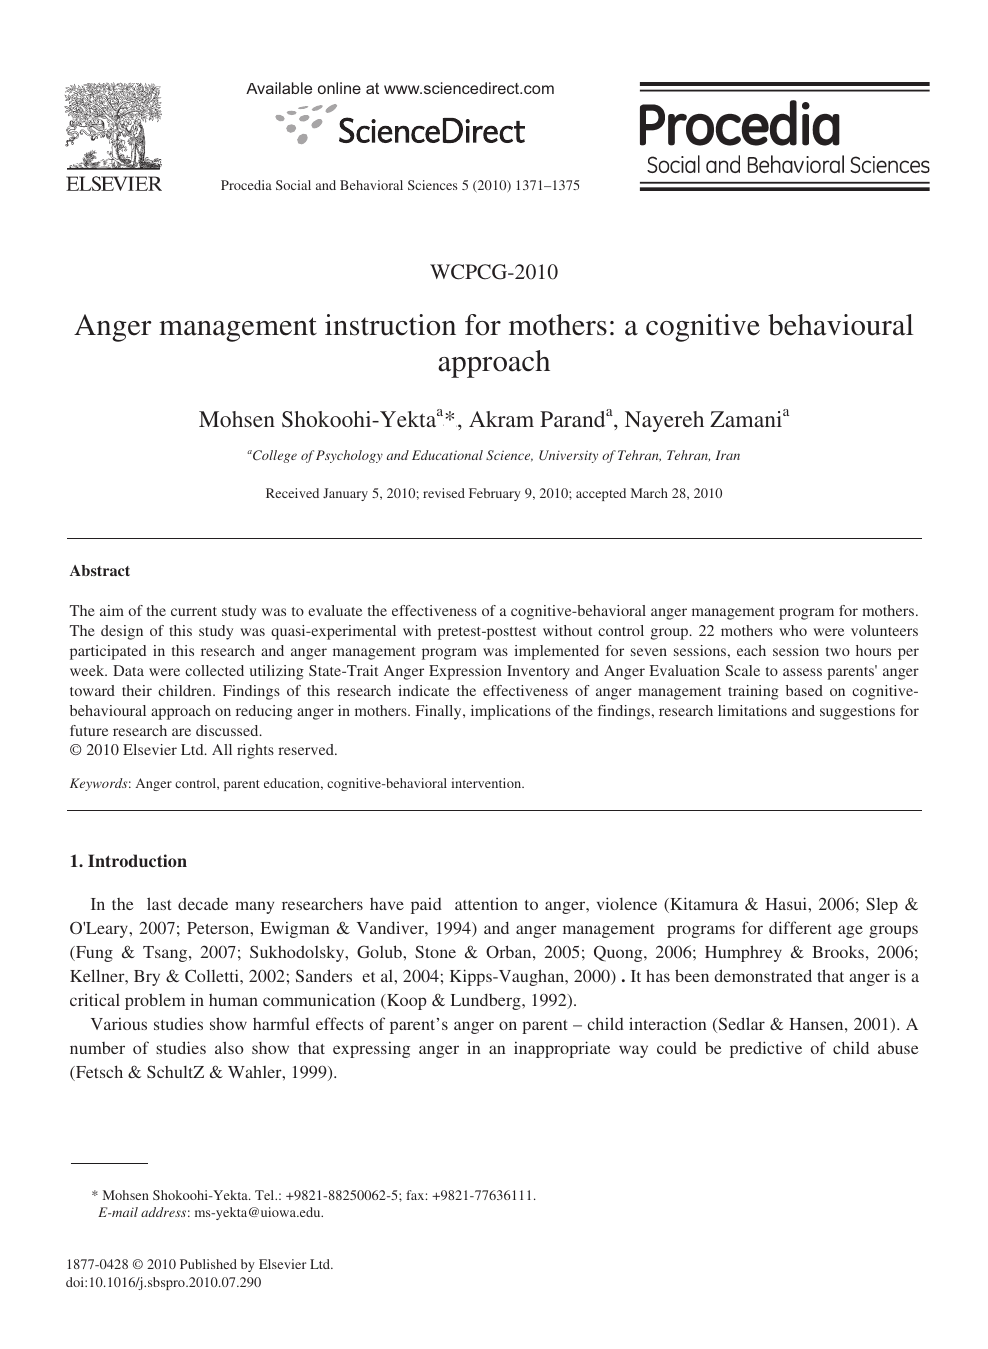 Anger management instruction for mothers: a cognitive